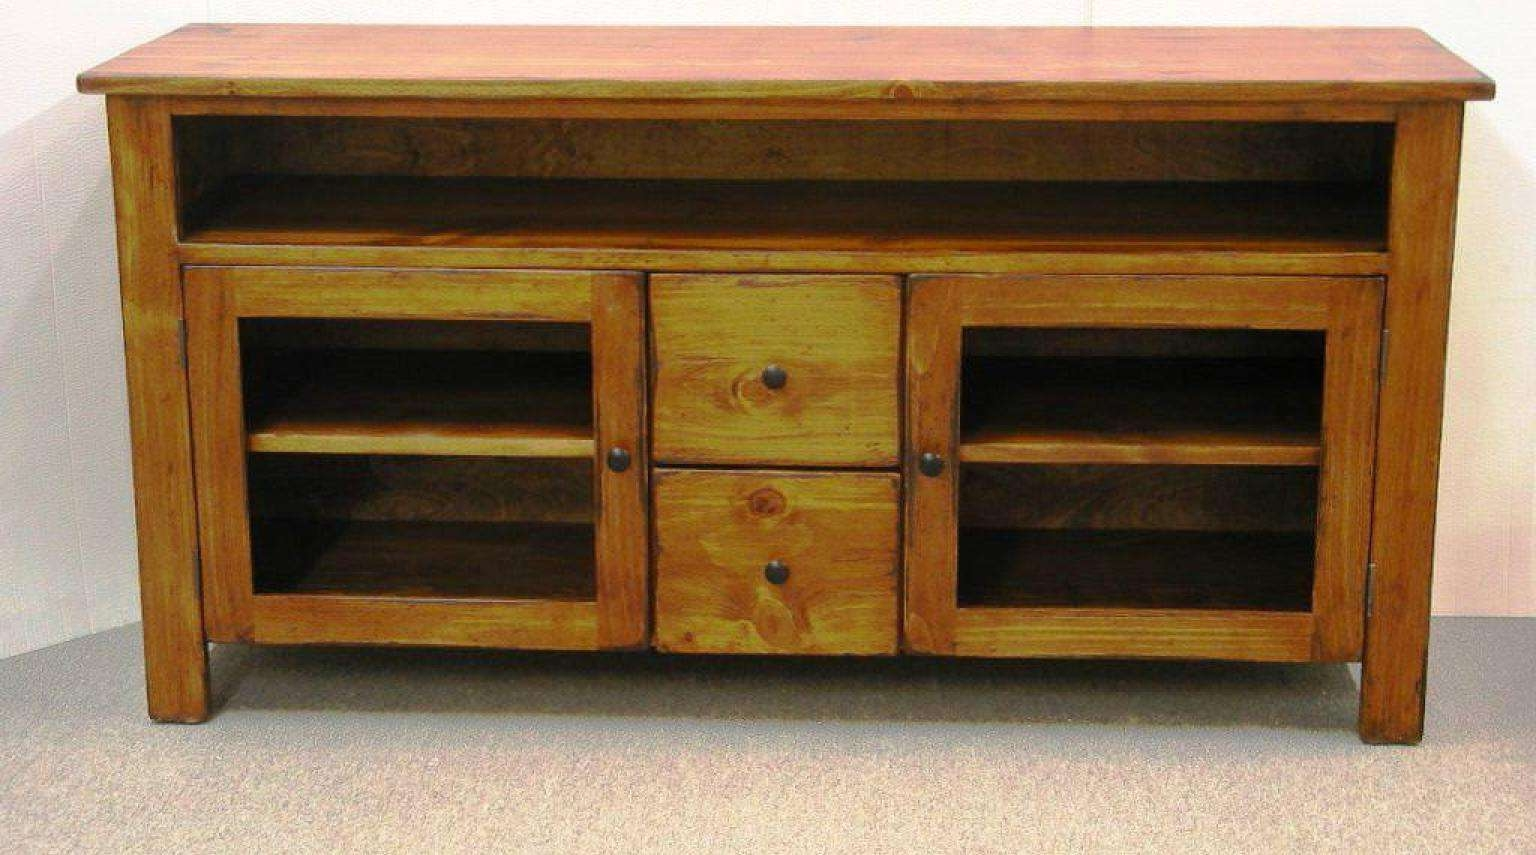 Tv : Red Entertainment Center Beautiful Rustic Red Tv Stands Tv With Regard To Rustic Red Tv Stands (View 12 of 20)